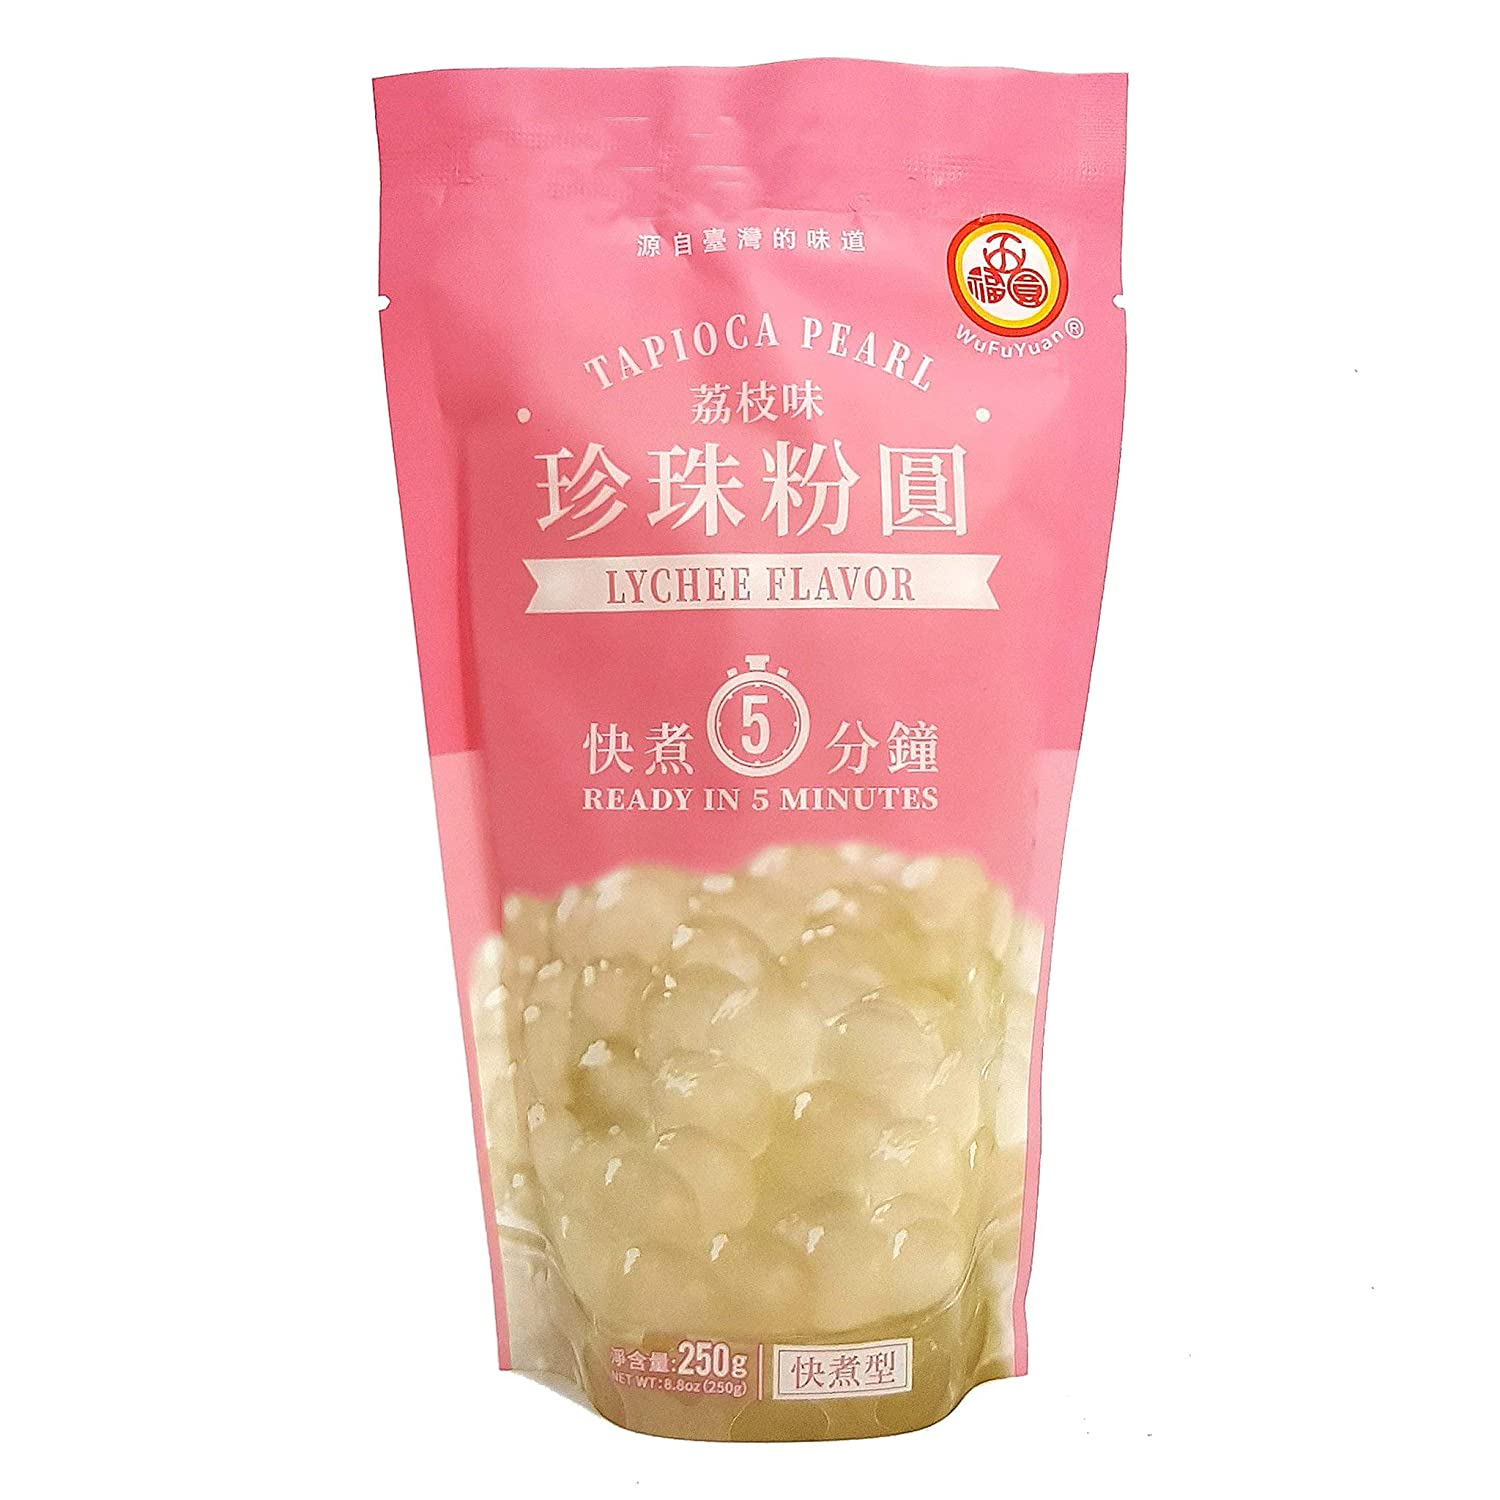 Max price 56% OFF Wufuyuan Tapioca Pearl Lychee 250g Flavour